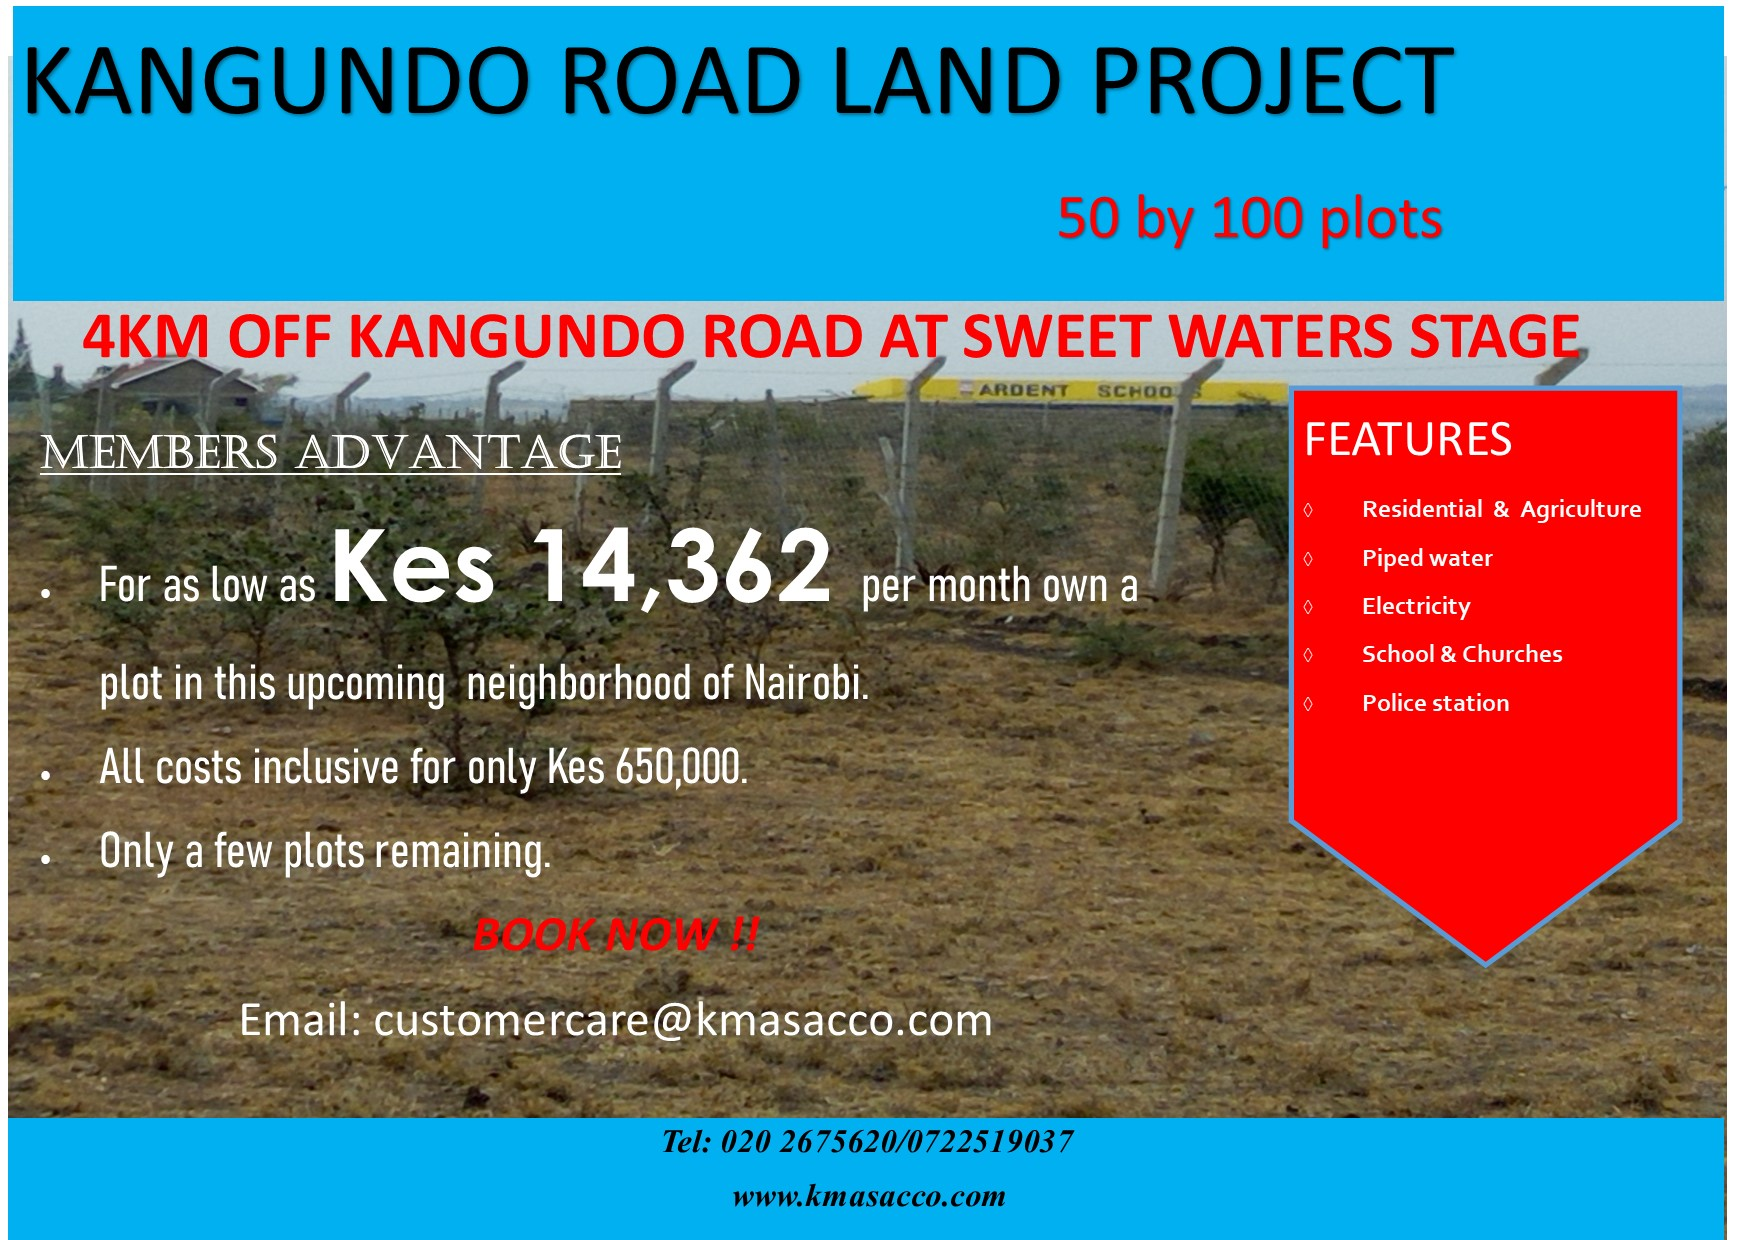 KANGUNDO-ROAD-PLOTS-LATEST-POSTER